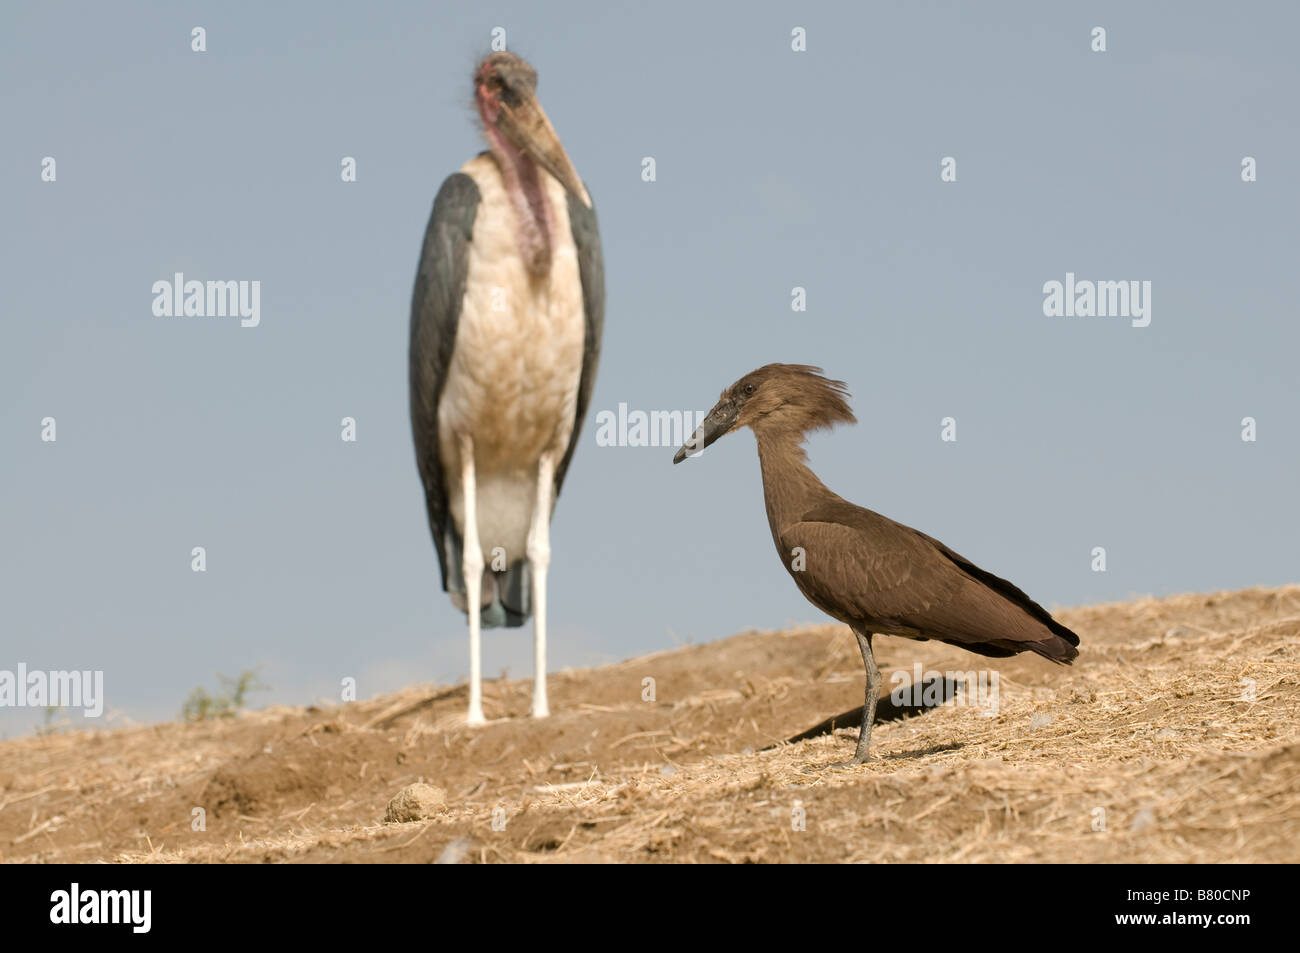 Marabou and Hammerhead standing togehter lake Awasa Ethiopia Africa - Stock Image